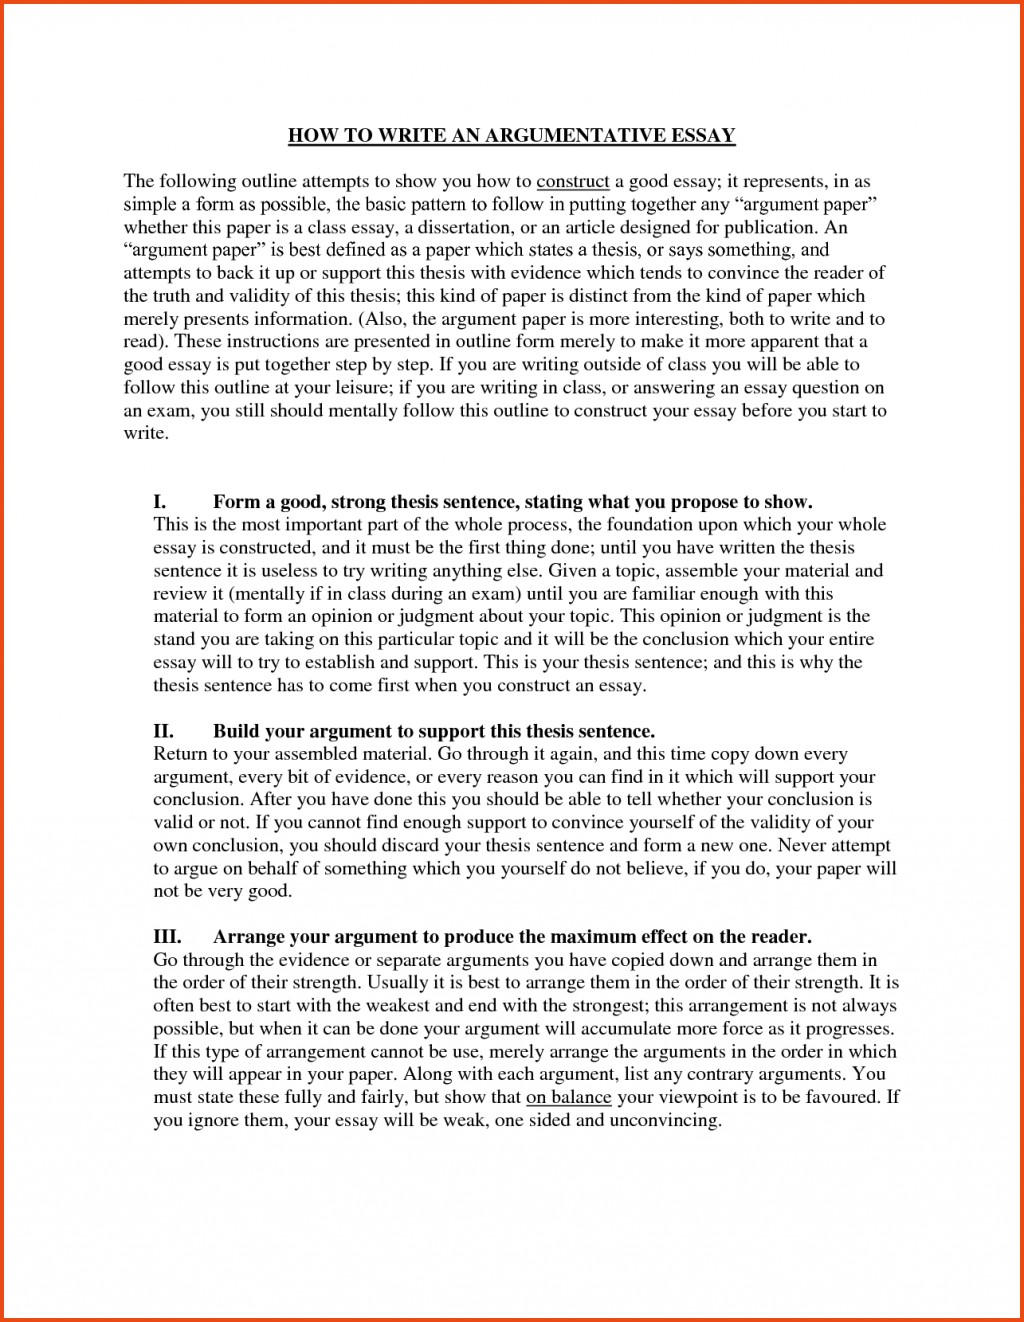 005 Essay Example How To Start An Brilliant Ideas Of Good Ways About Yourself Dissertation Nice Amazing A Definition Begin With Hook Dictionary Large